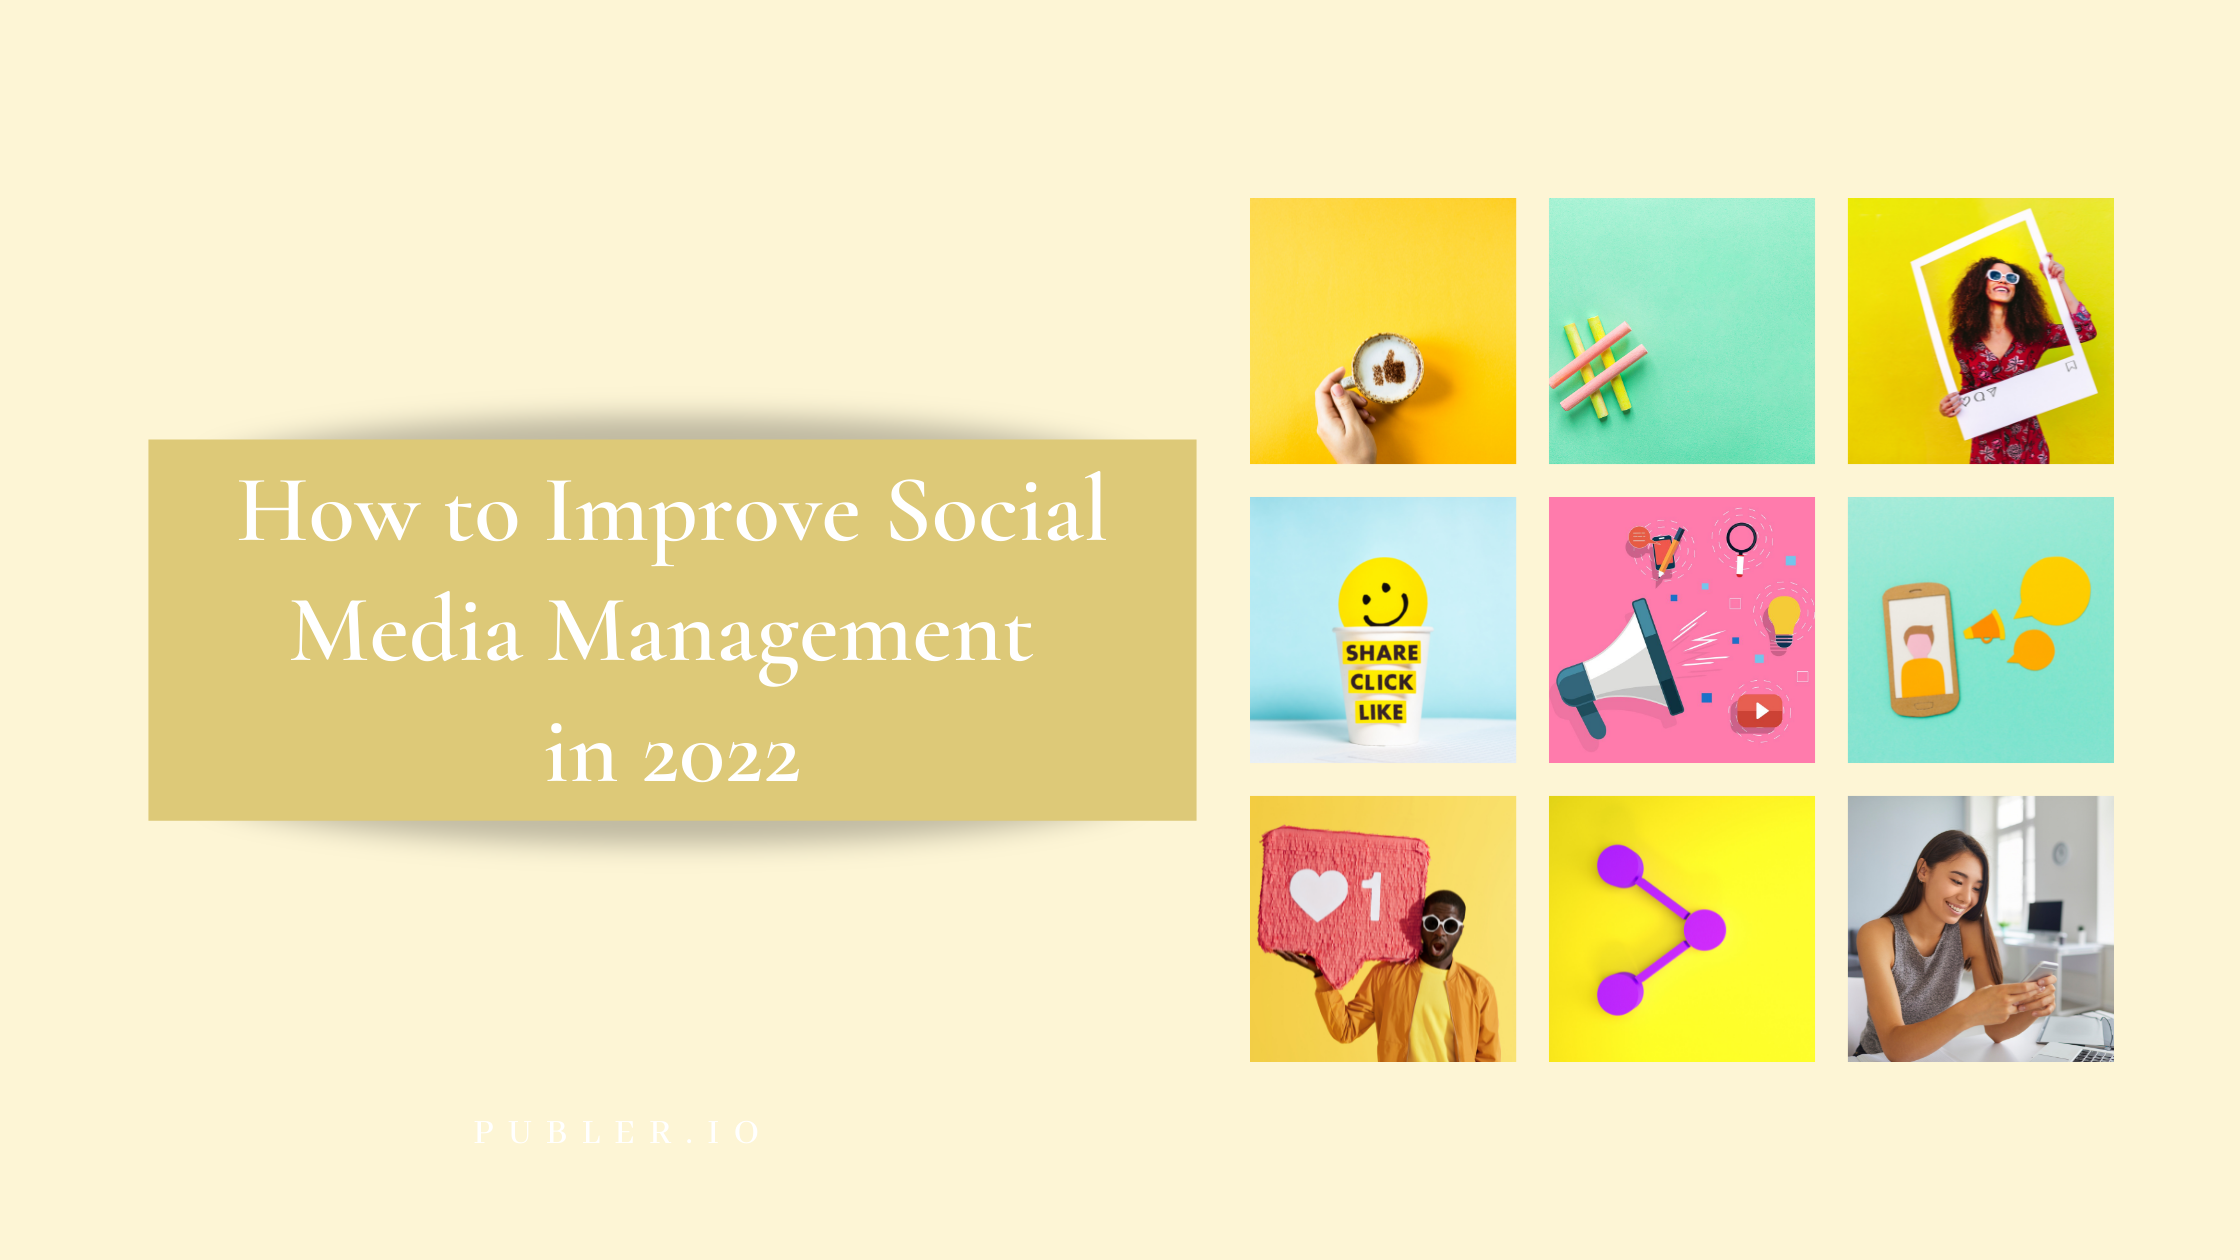 How to Improve Social Media Management in 2022 by publer.io